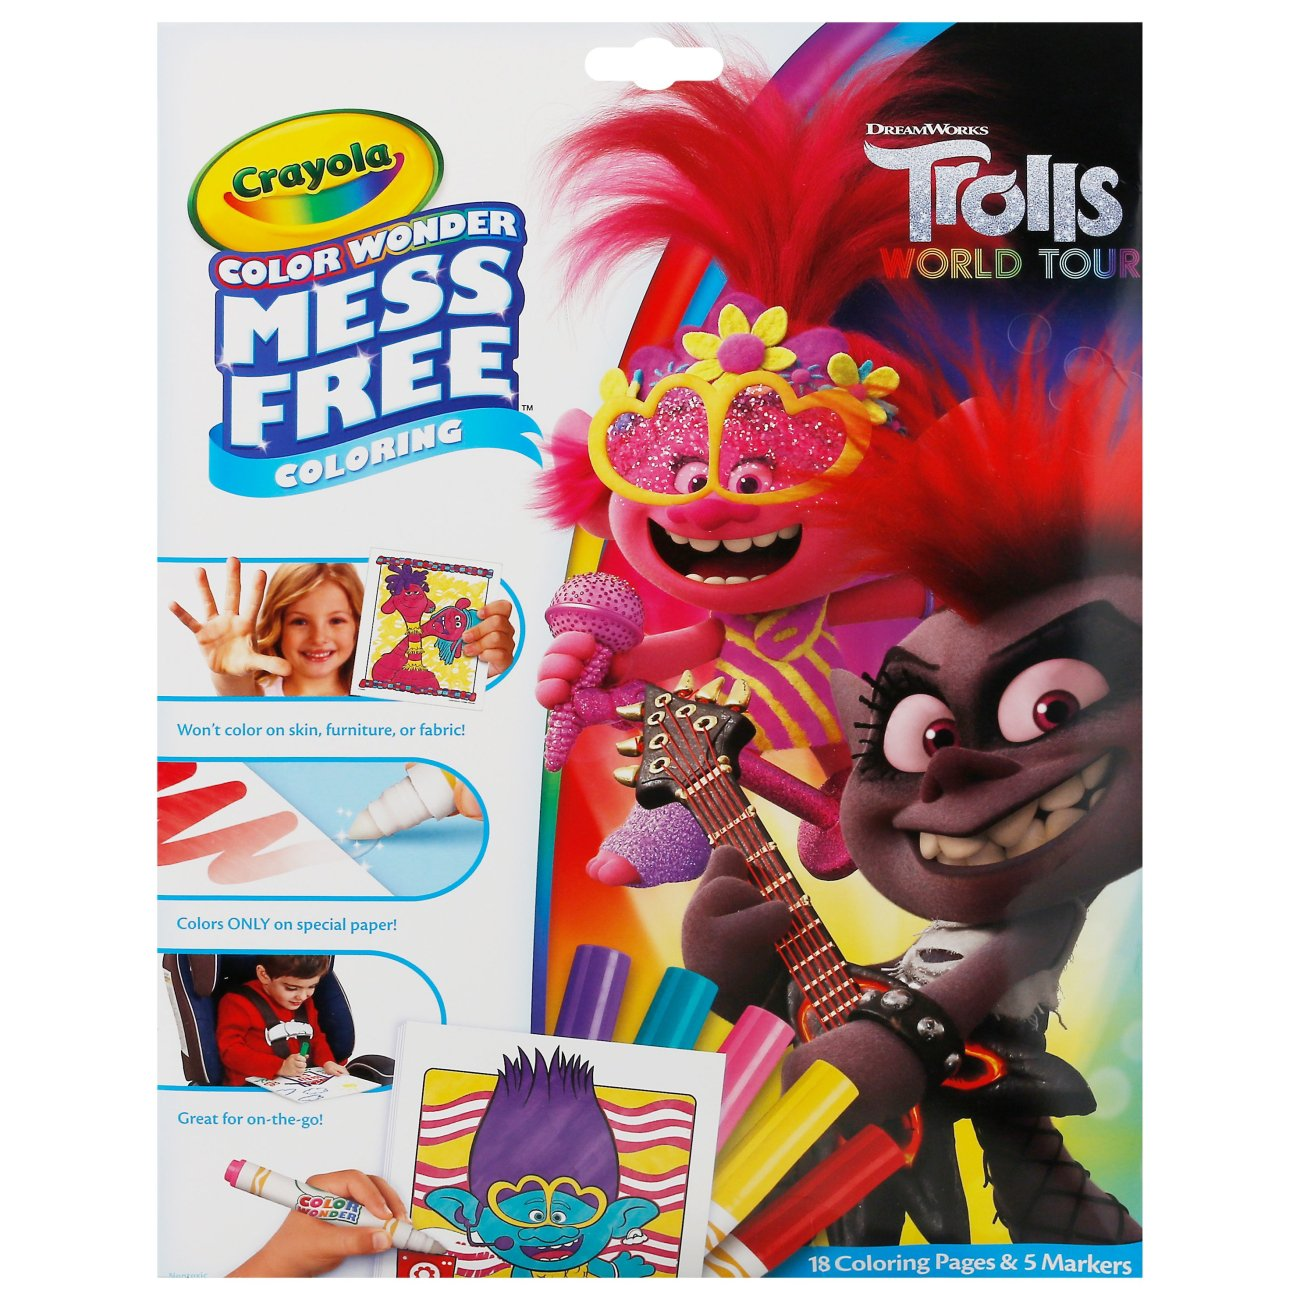 Crayola Color Wonder Mess Free Trolls World Tour Coloring Pages